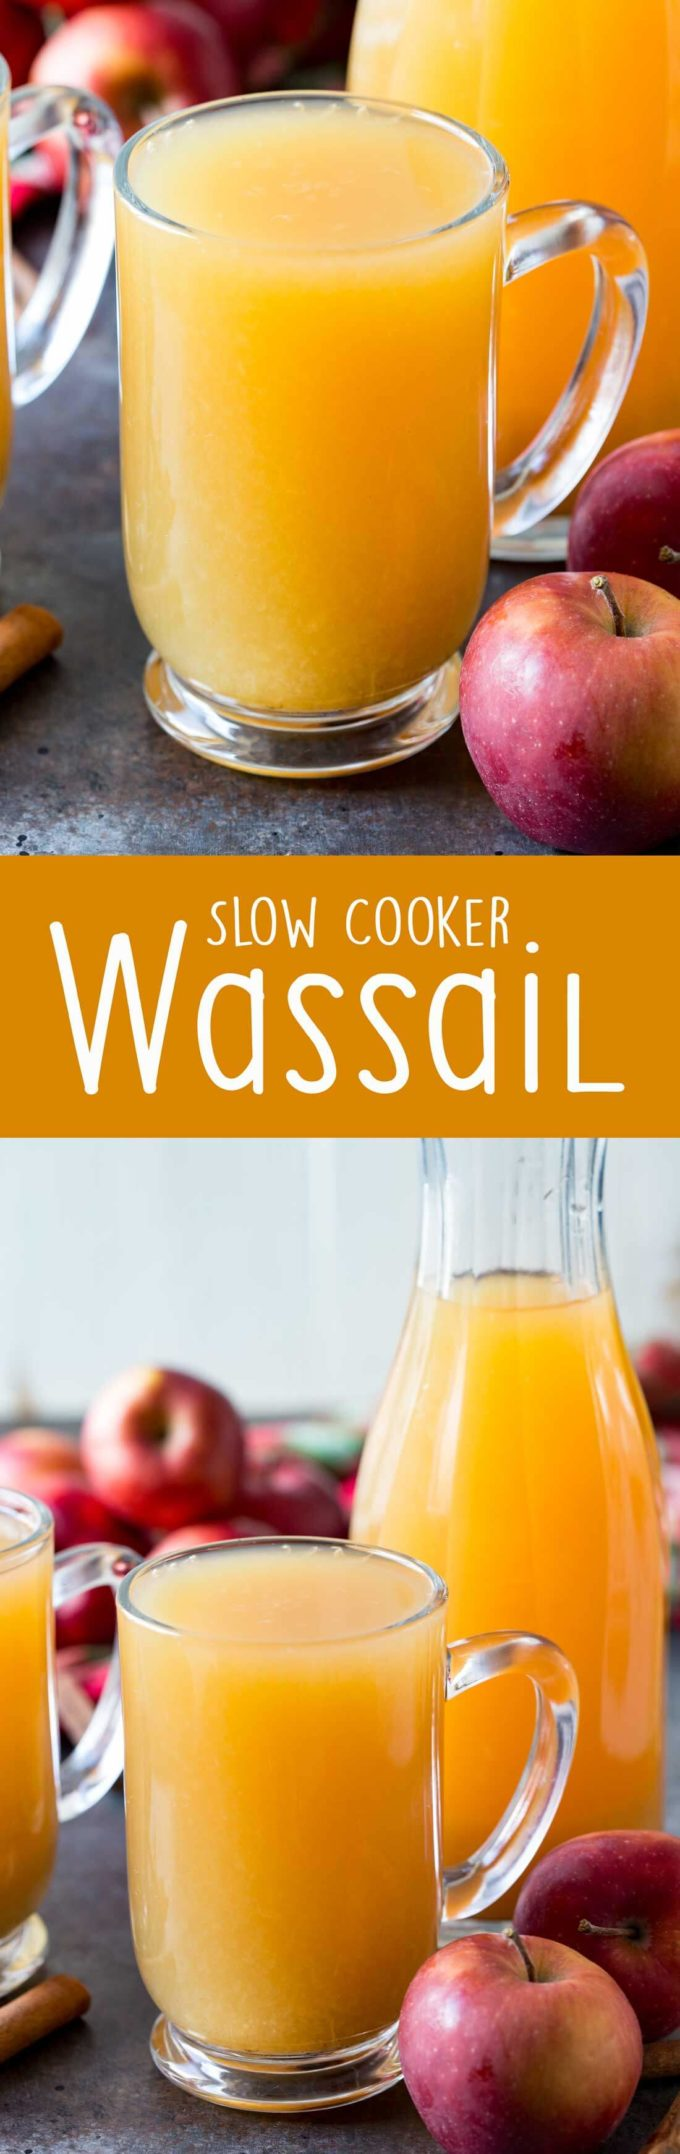 slow-cooker-wassail-PIN